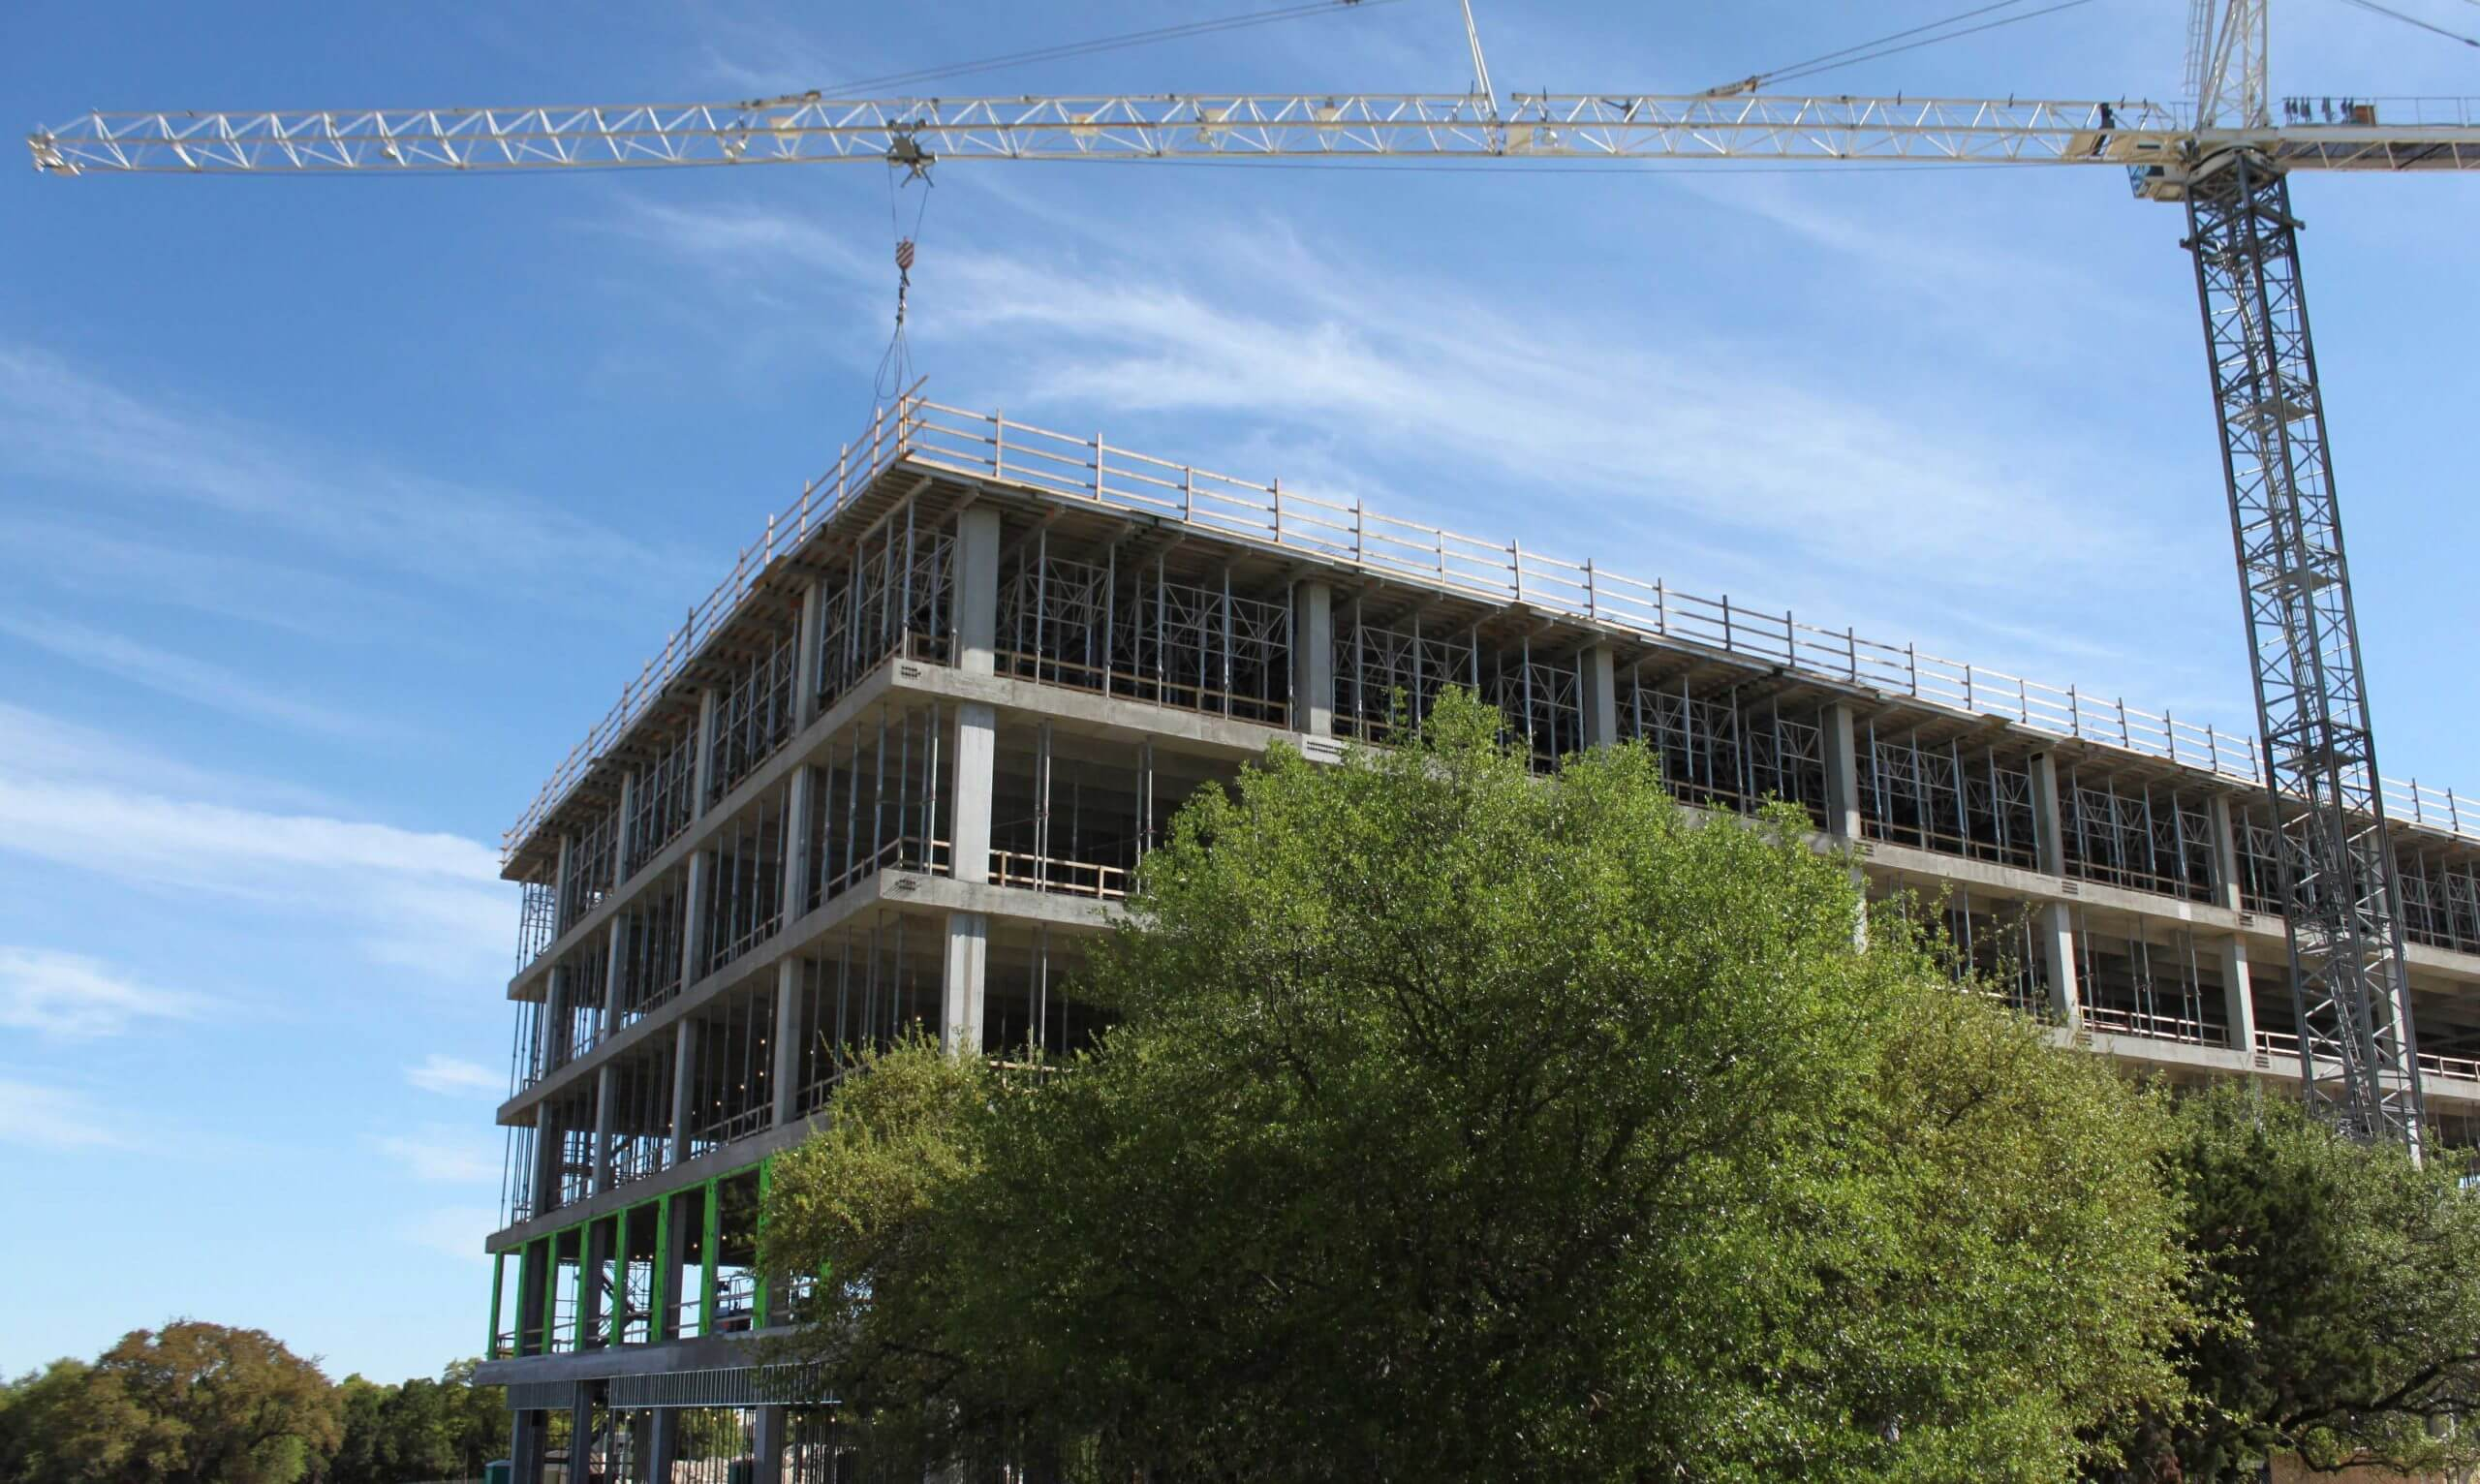 The Charles Schwab facility being constructed in Austin, Texas.